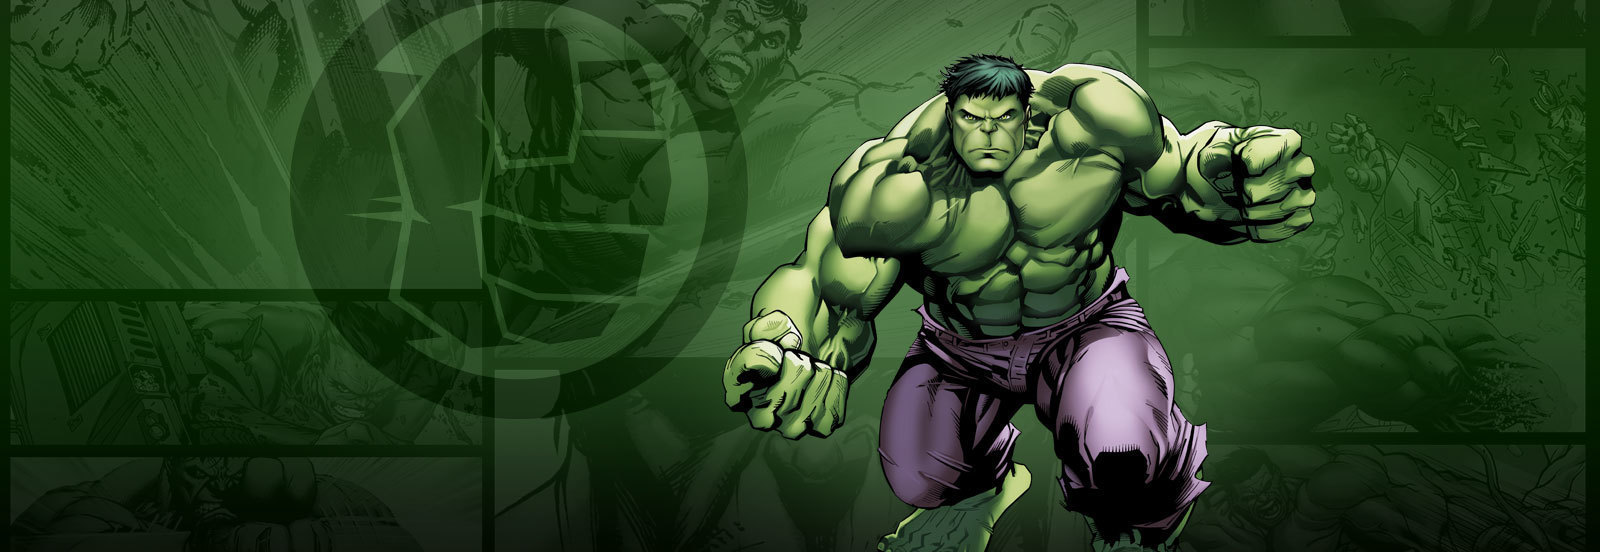 Hulk marvel avenger superhero desktop background hd wallpaper - Hulk hd images free download ...